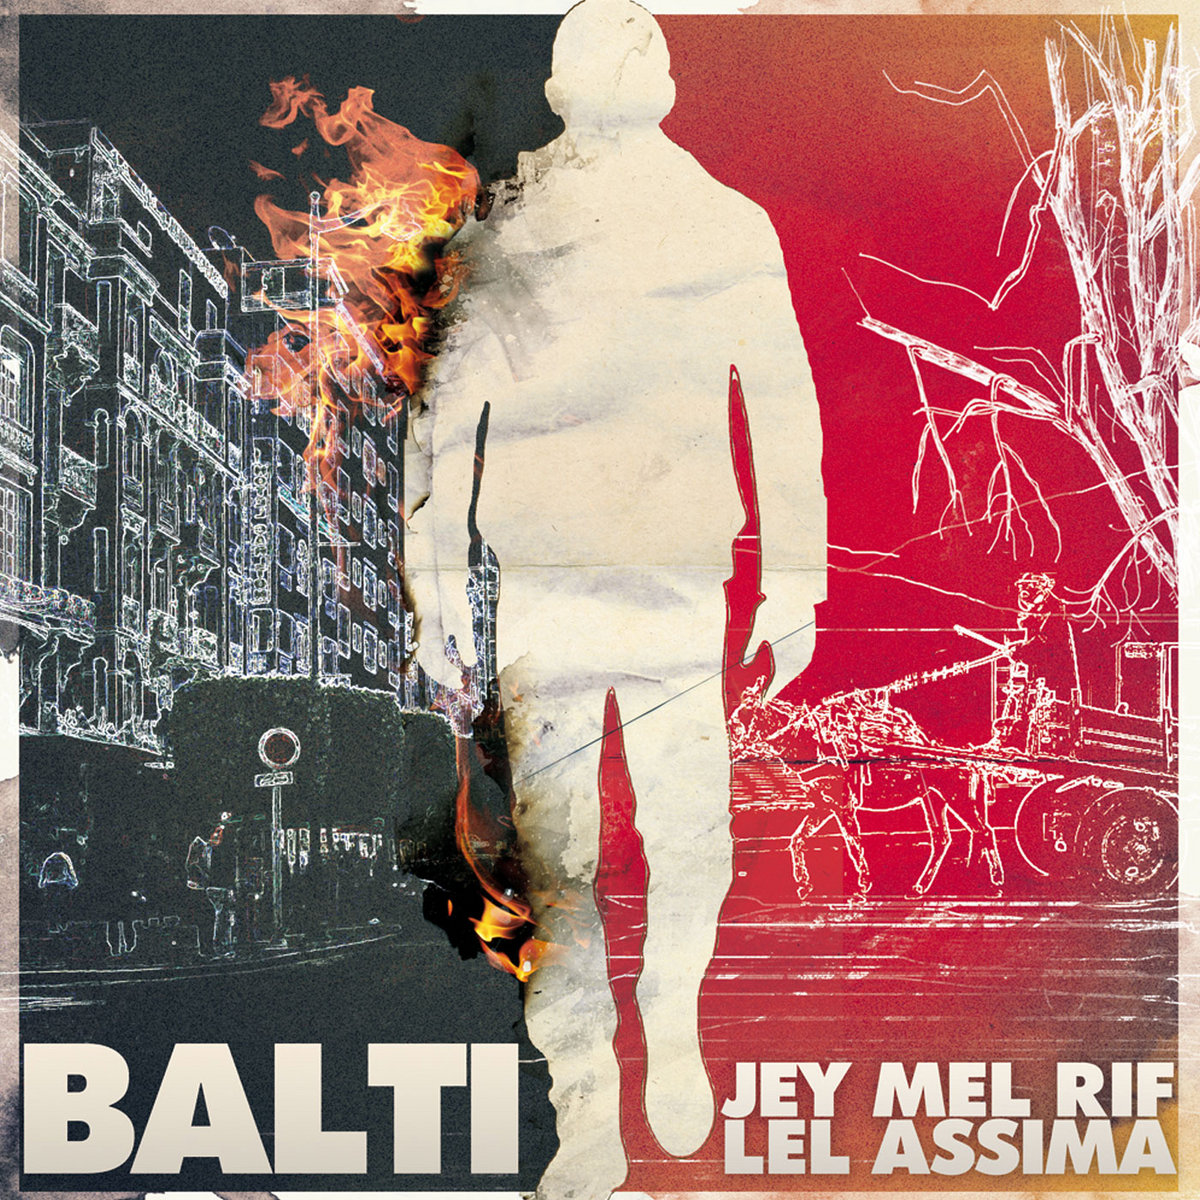 music balti jey mel rif lel assima mp3